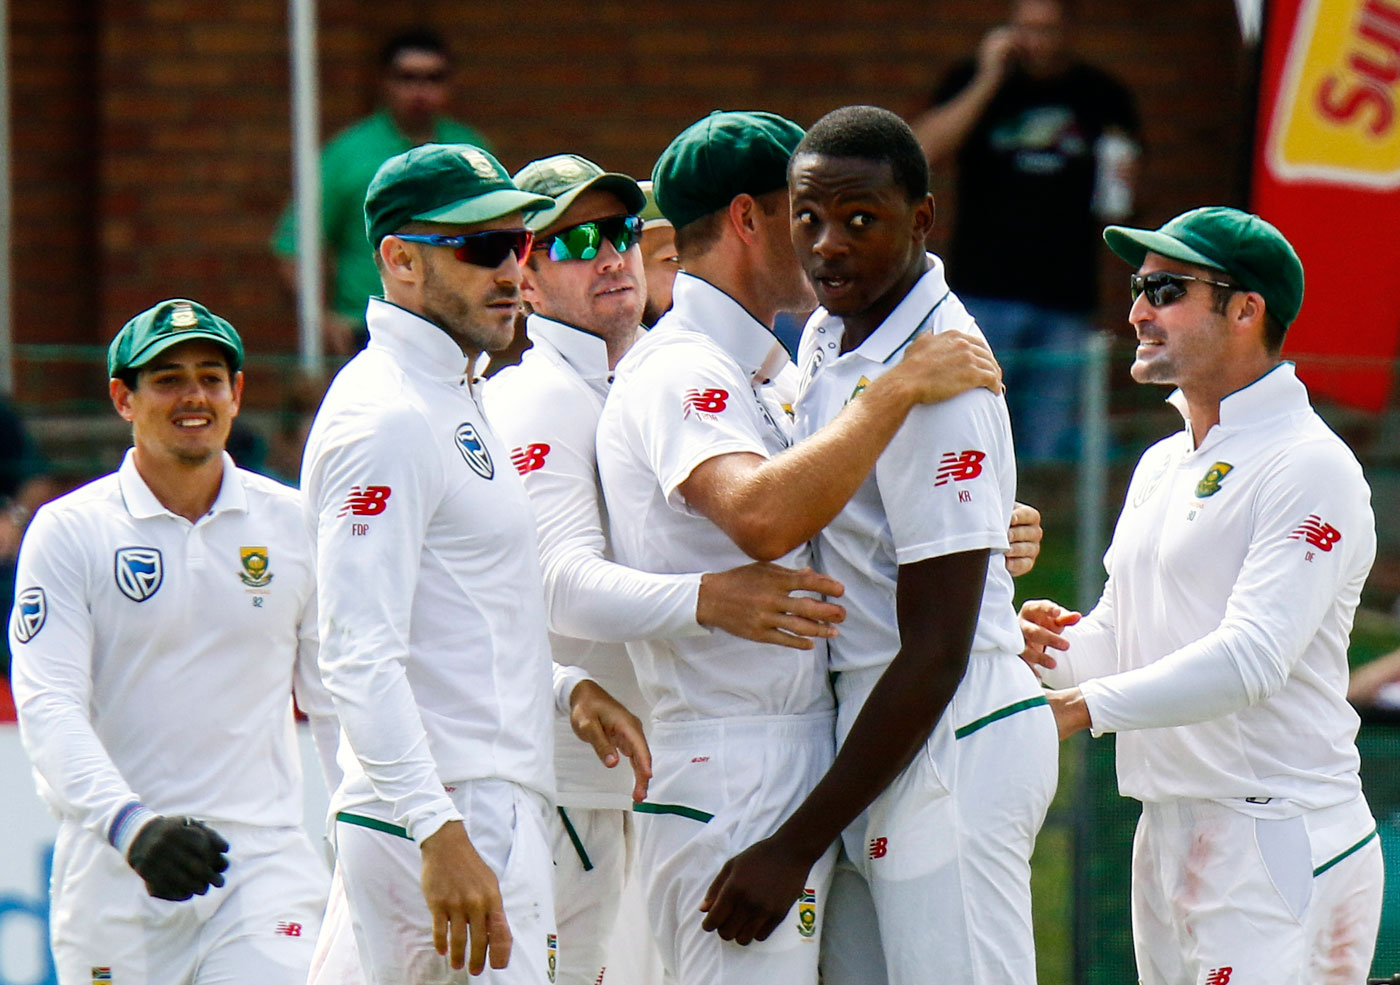 'Going too far': Why the South Africans aren't happy after second Test